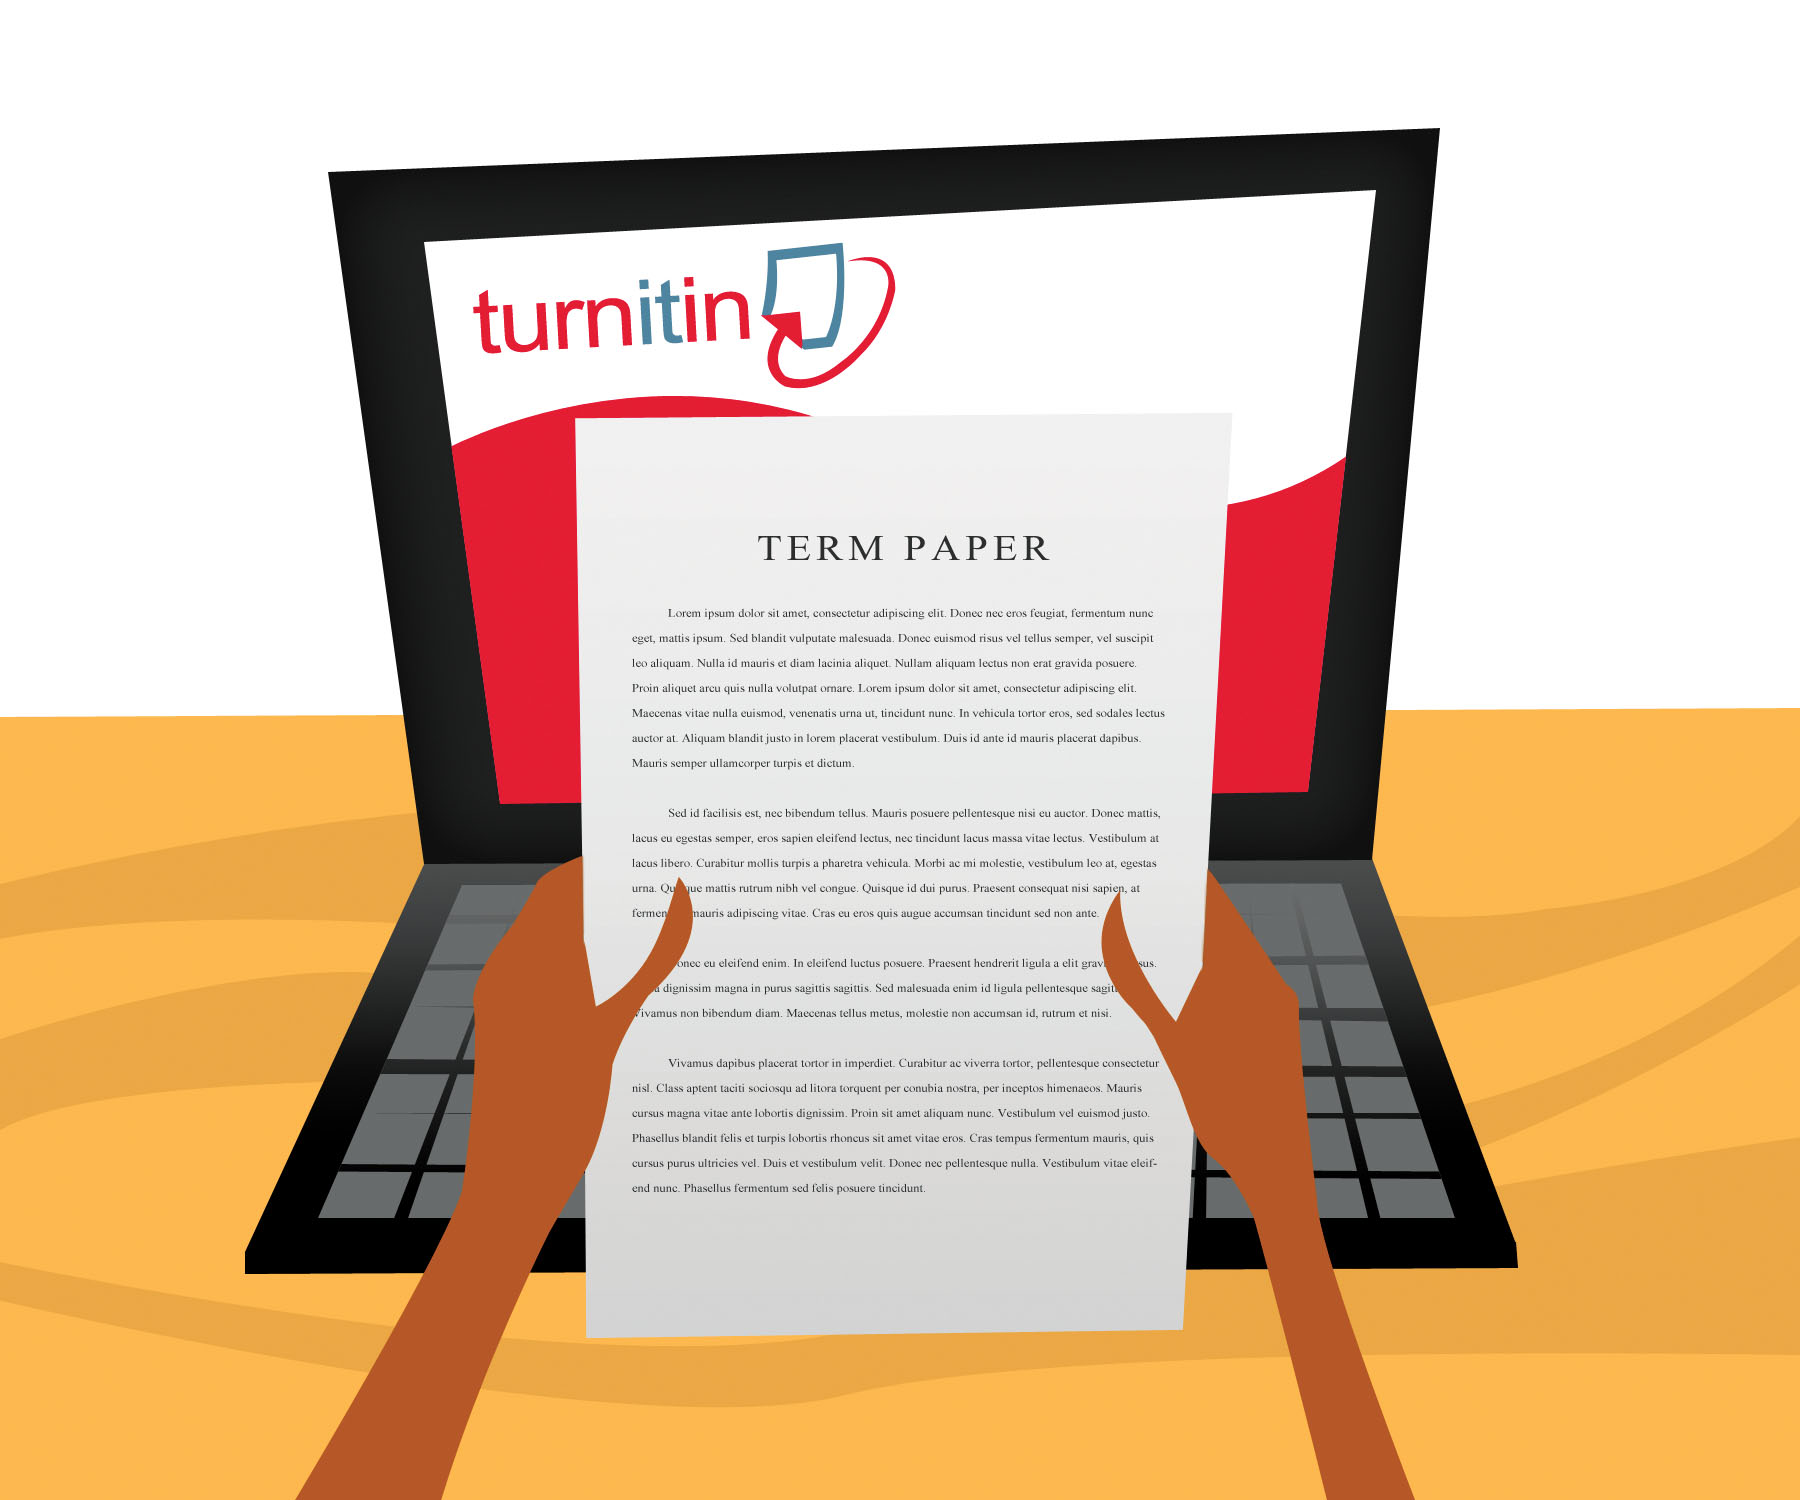 check your essay for plagiarism turnitin Most paraphrasing service providers have instructor access to turnitin, and thus they can check and fix the plagiarism errors before they hand you your paper for submission therefore, when your lecturer checks the paper for plagiarism via turnitin, the paper will be original as per turnitin standards.